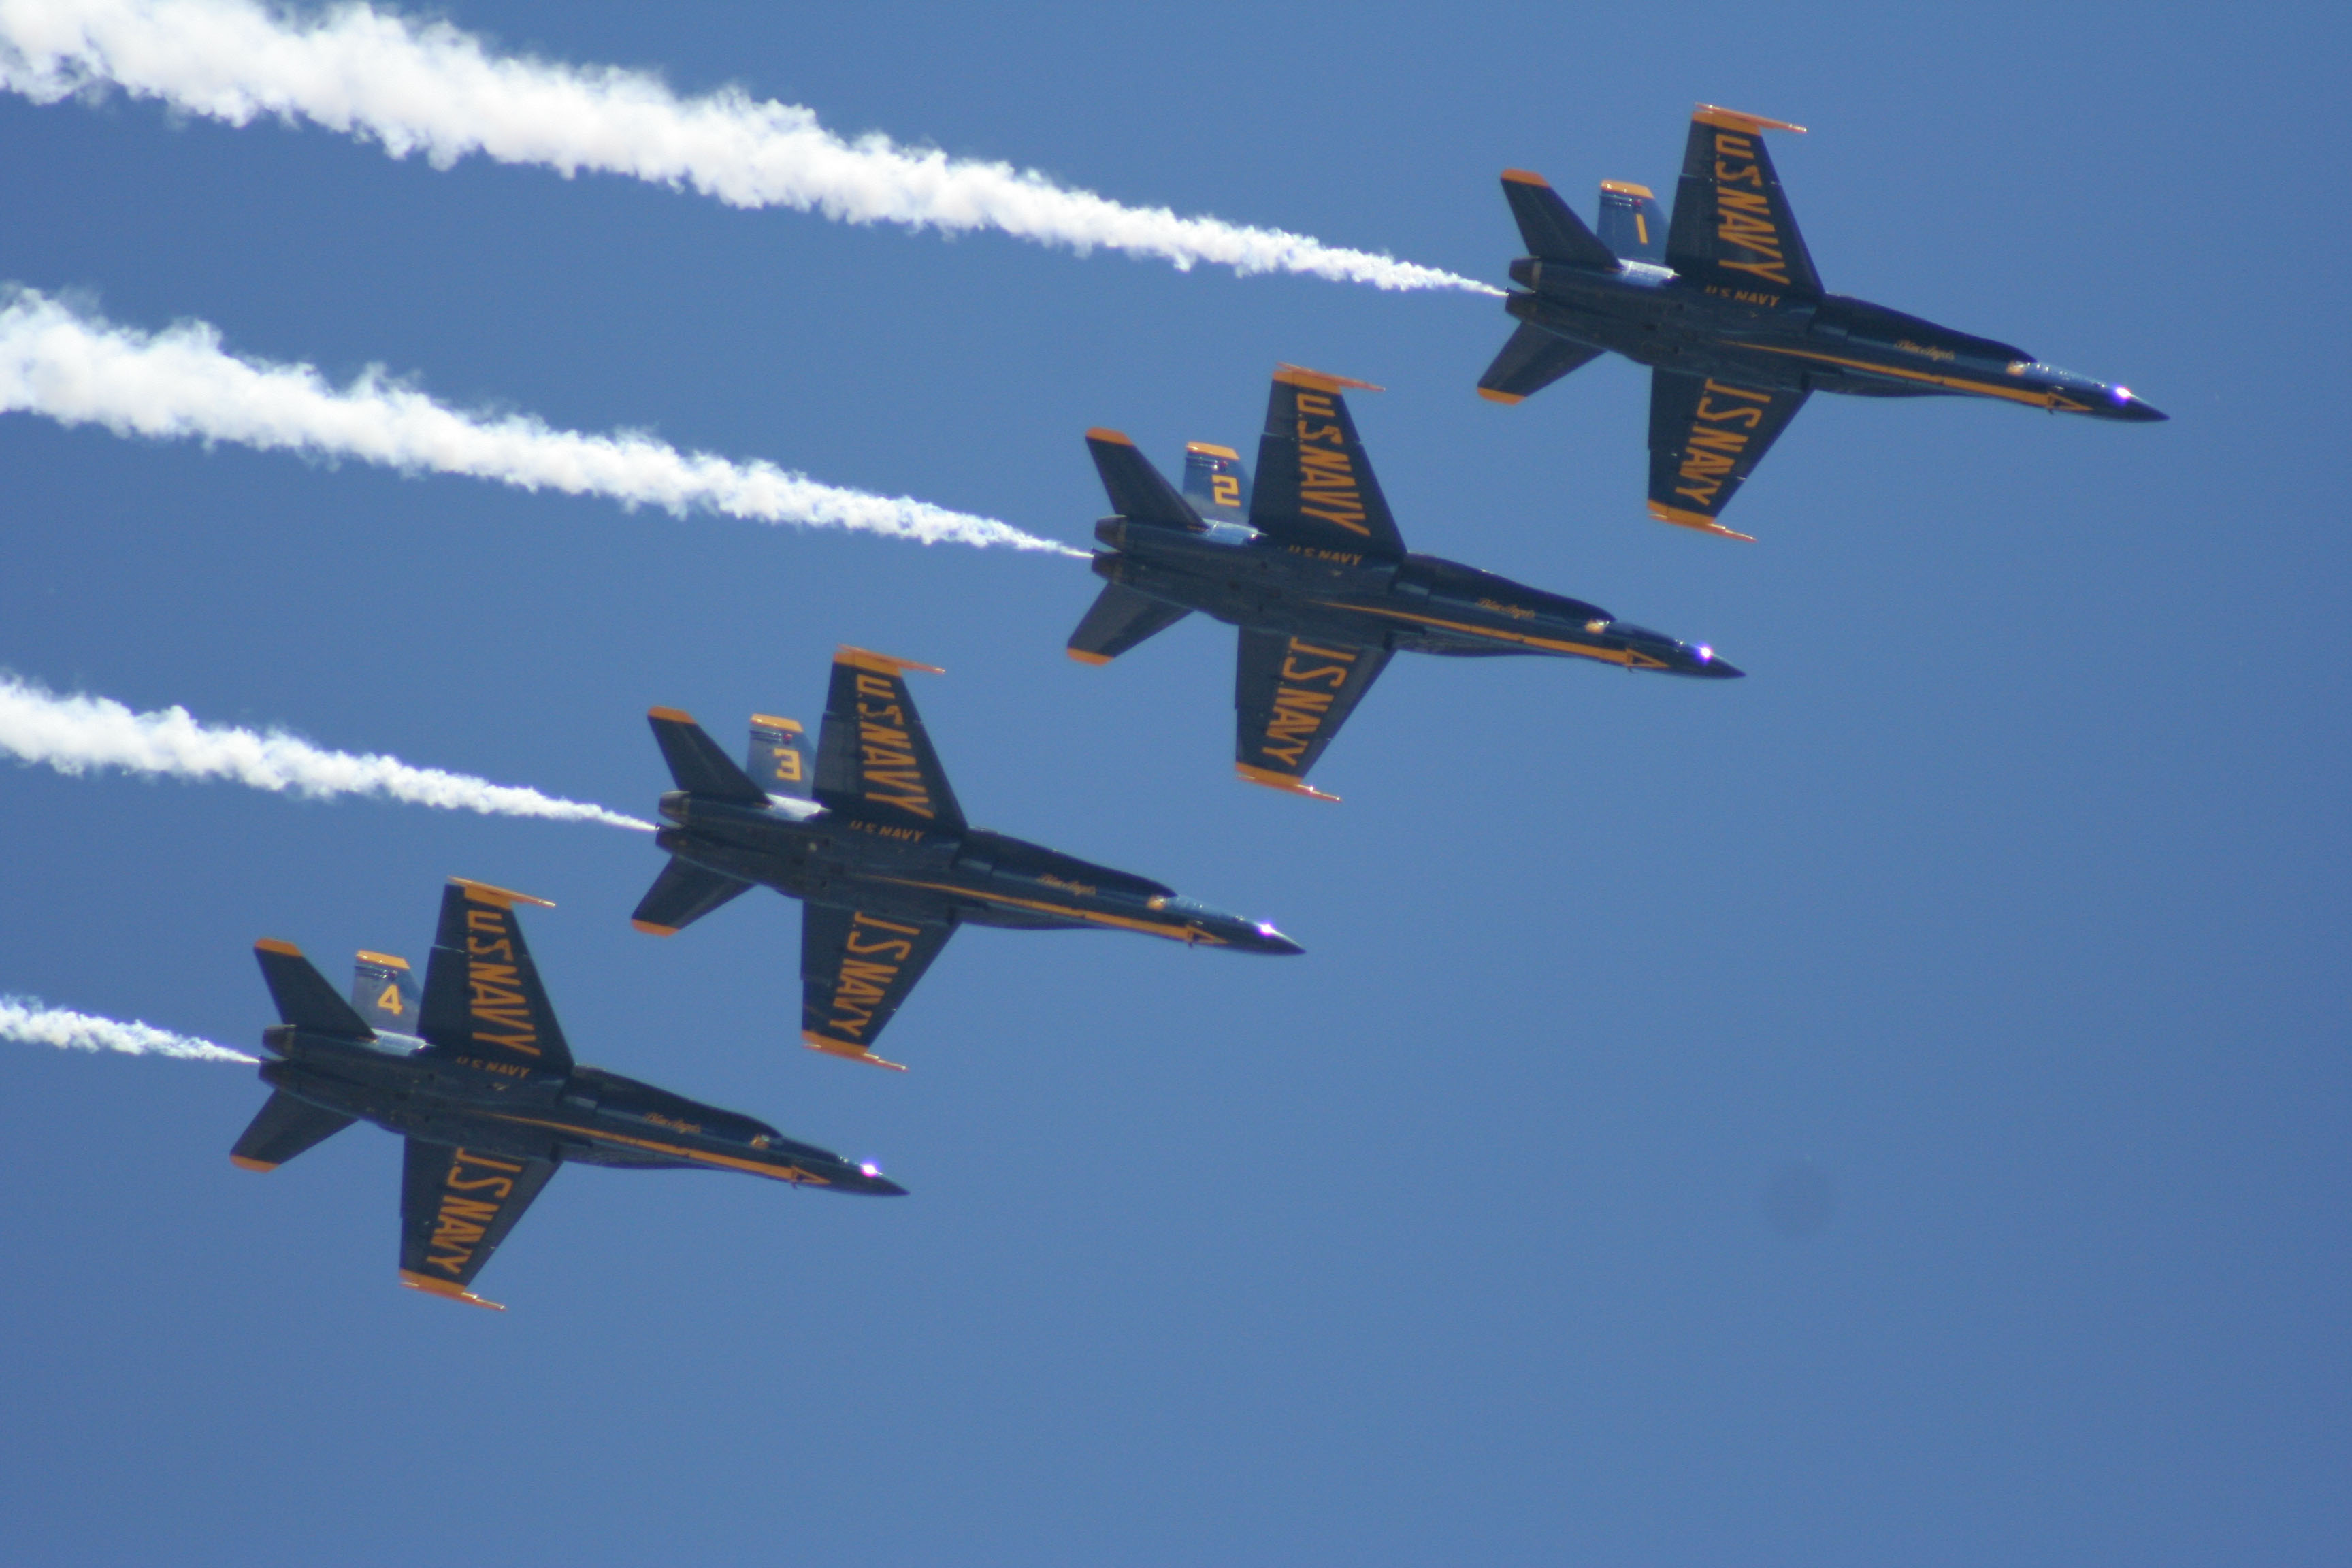 Blue_angels_flyover.jpg